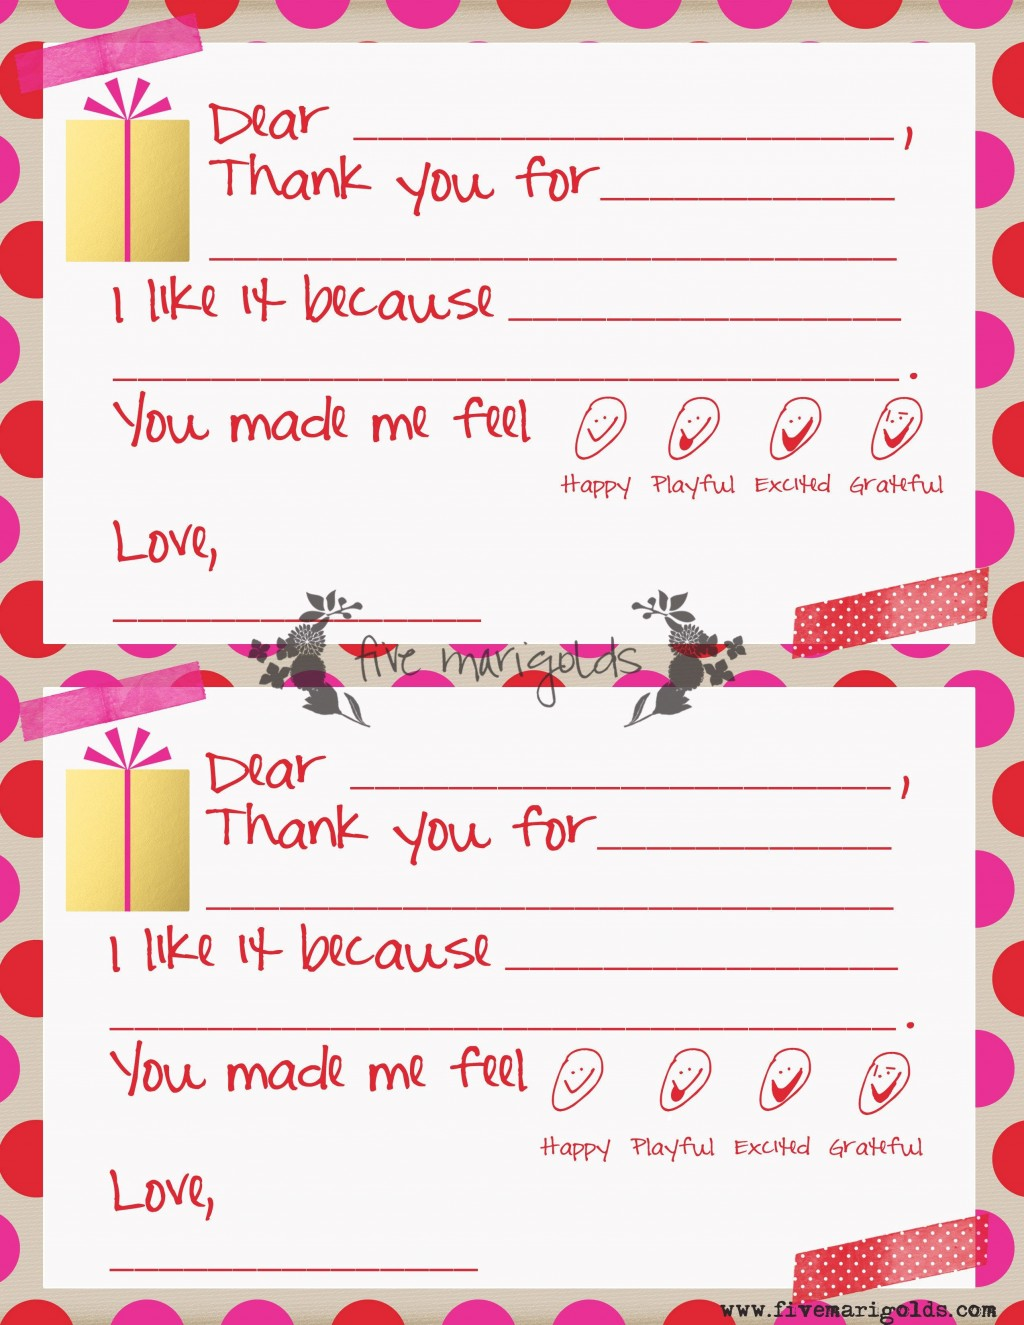 000 Unforgettable Thank You Note Template For Kid Highest Clarity  Kids Child Pdf LetterLarge